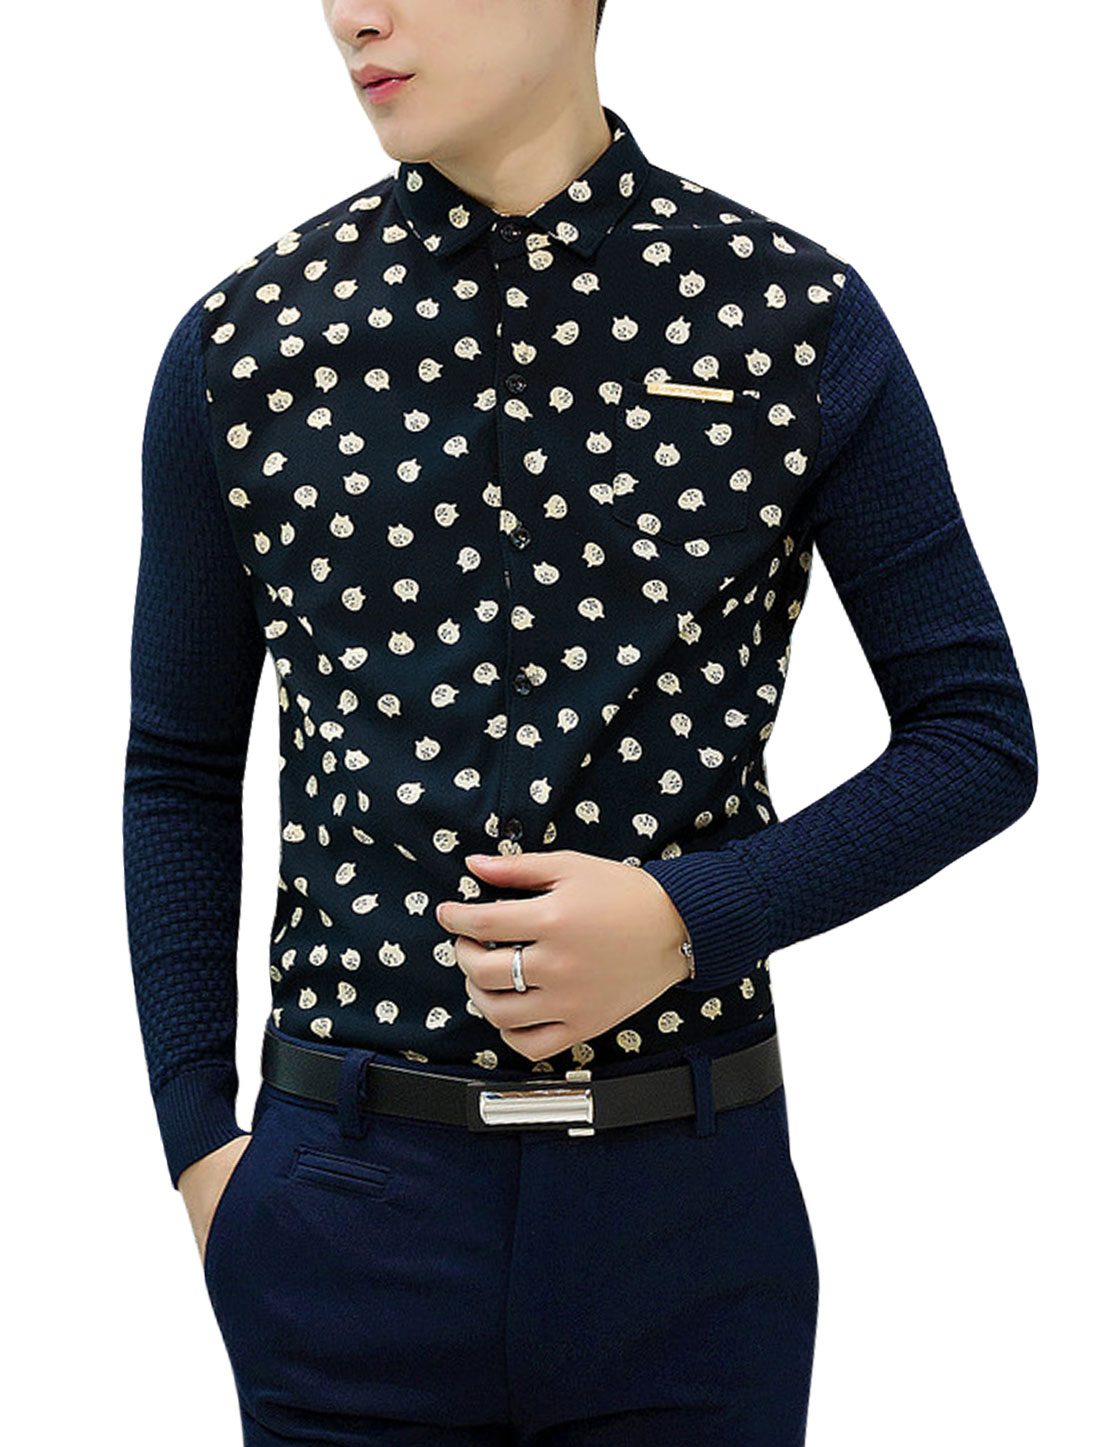 Men Cartoon Cat Print Contrast Color Rib Knit Panel Slim Cut Shirt Navy Blue S